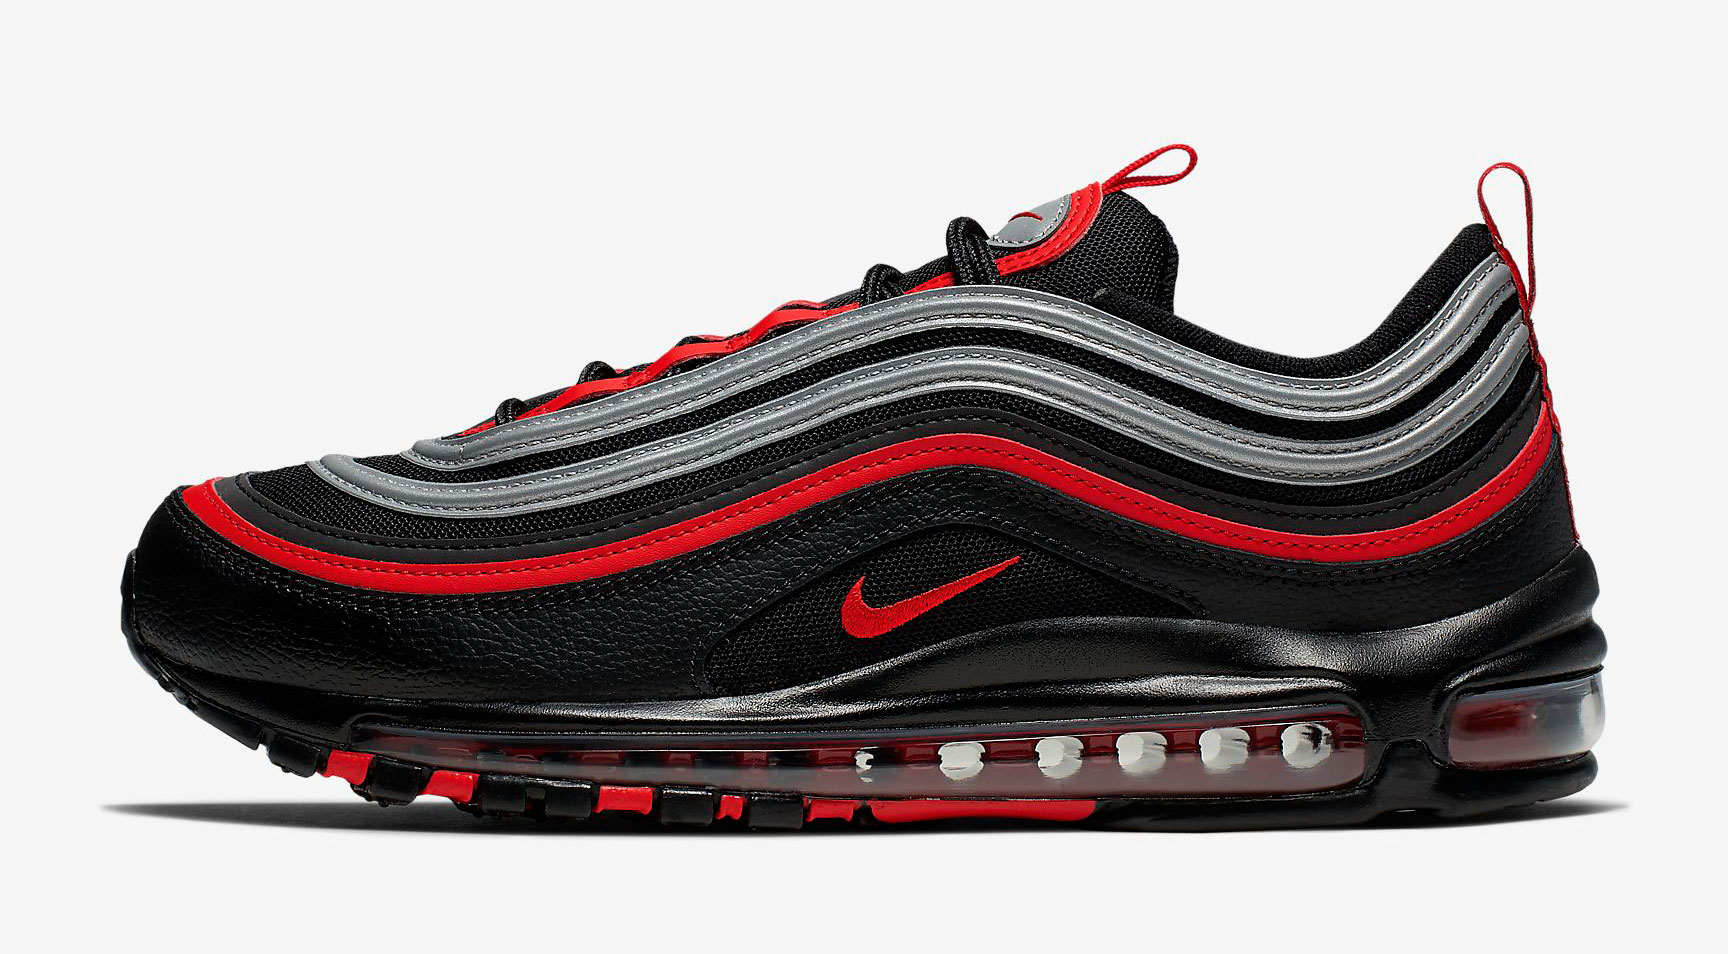 nike-air-max-97-bred-reflective-silver-release-date